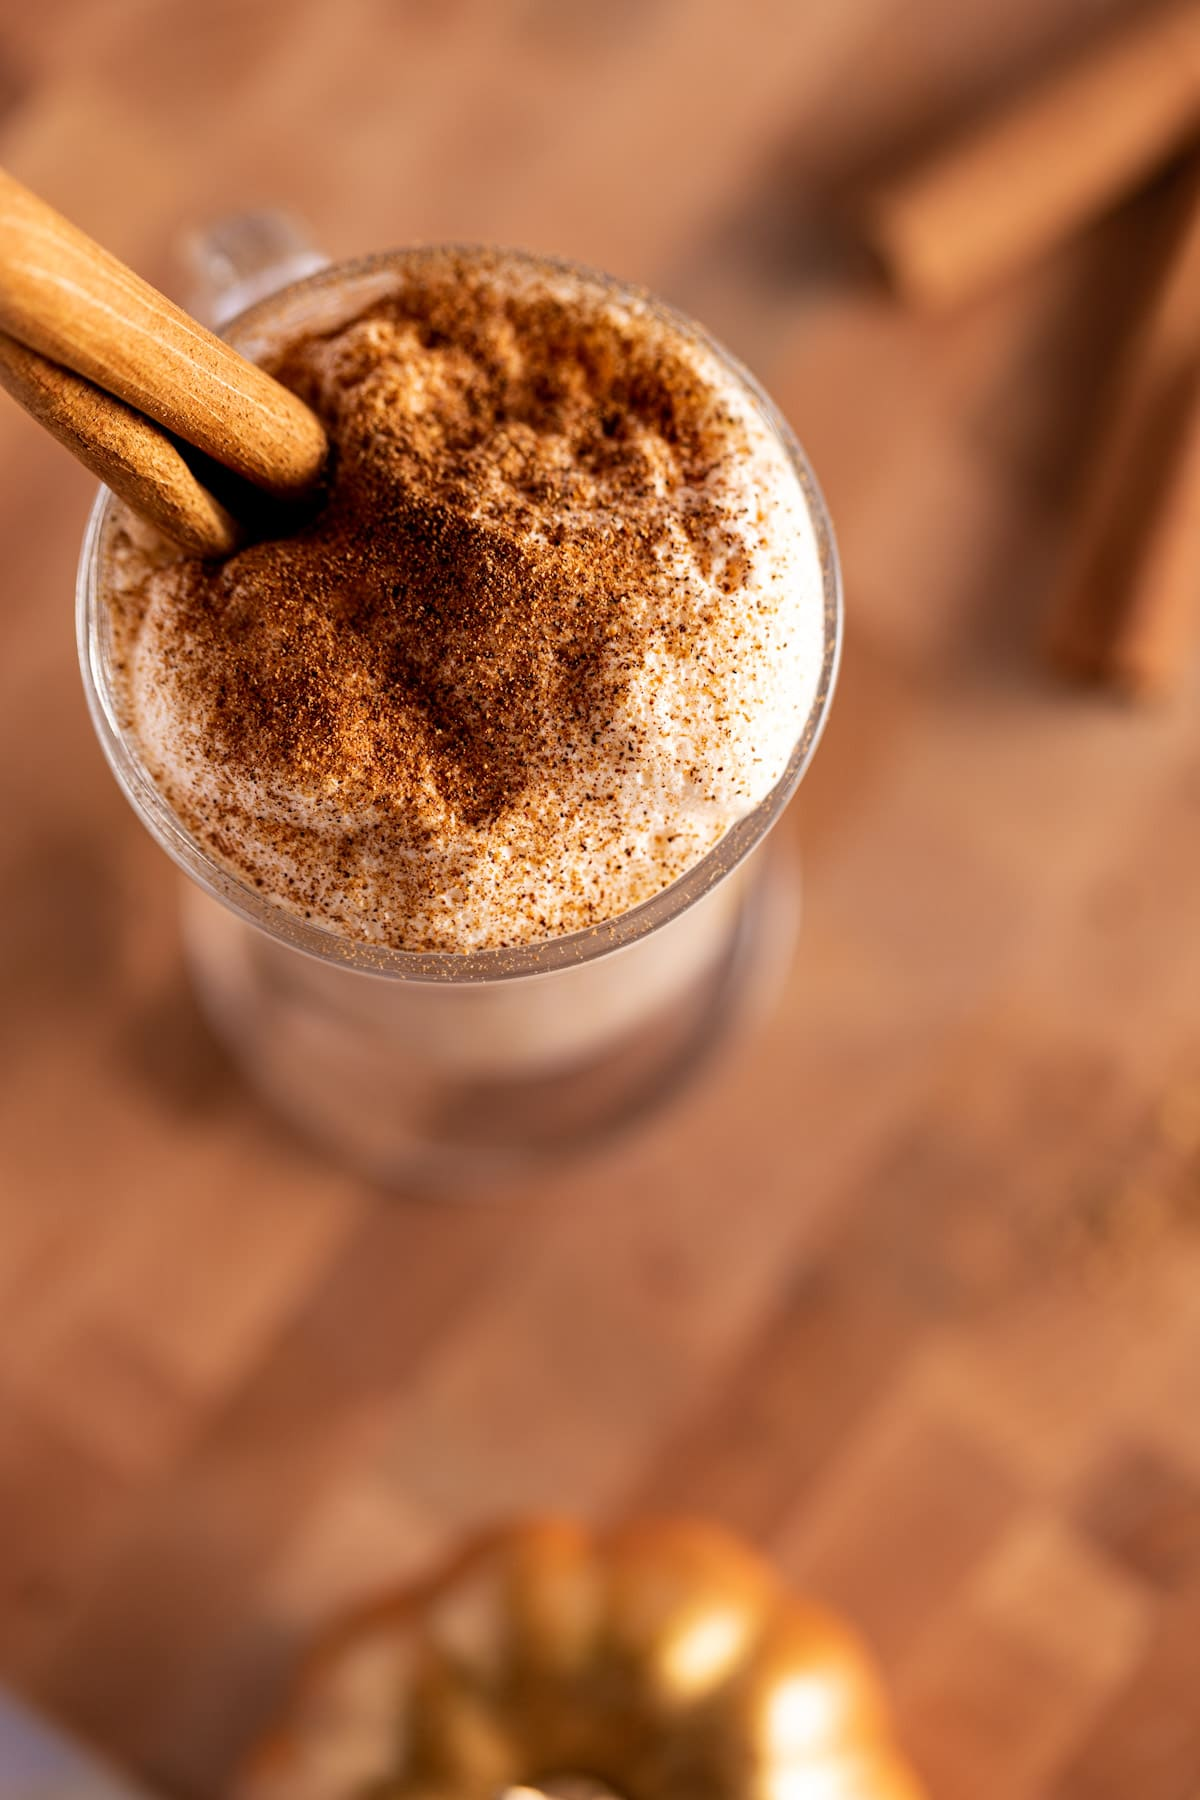 Overhead photo of an iced latte with pumpkin foam on top, on a wooden board, with golden decorative pumpkins around the glass.